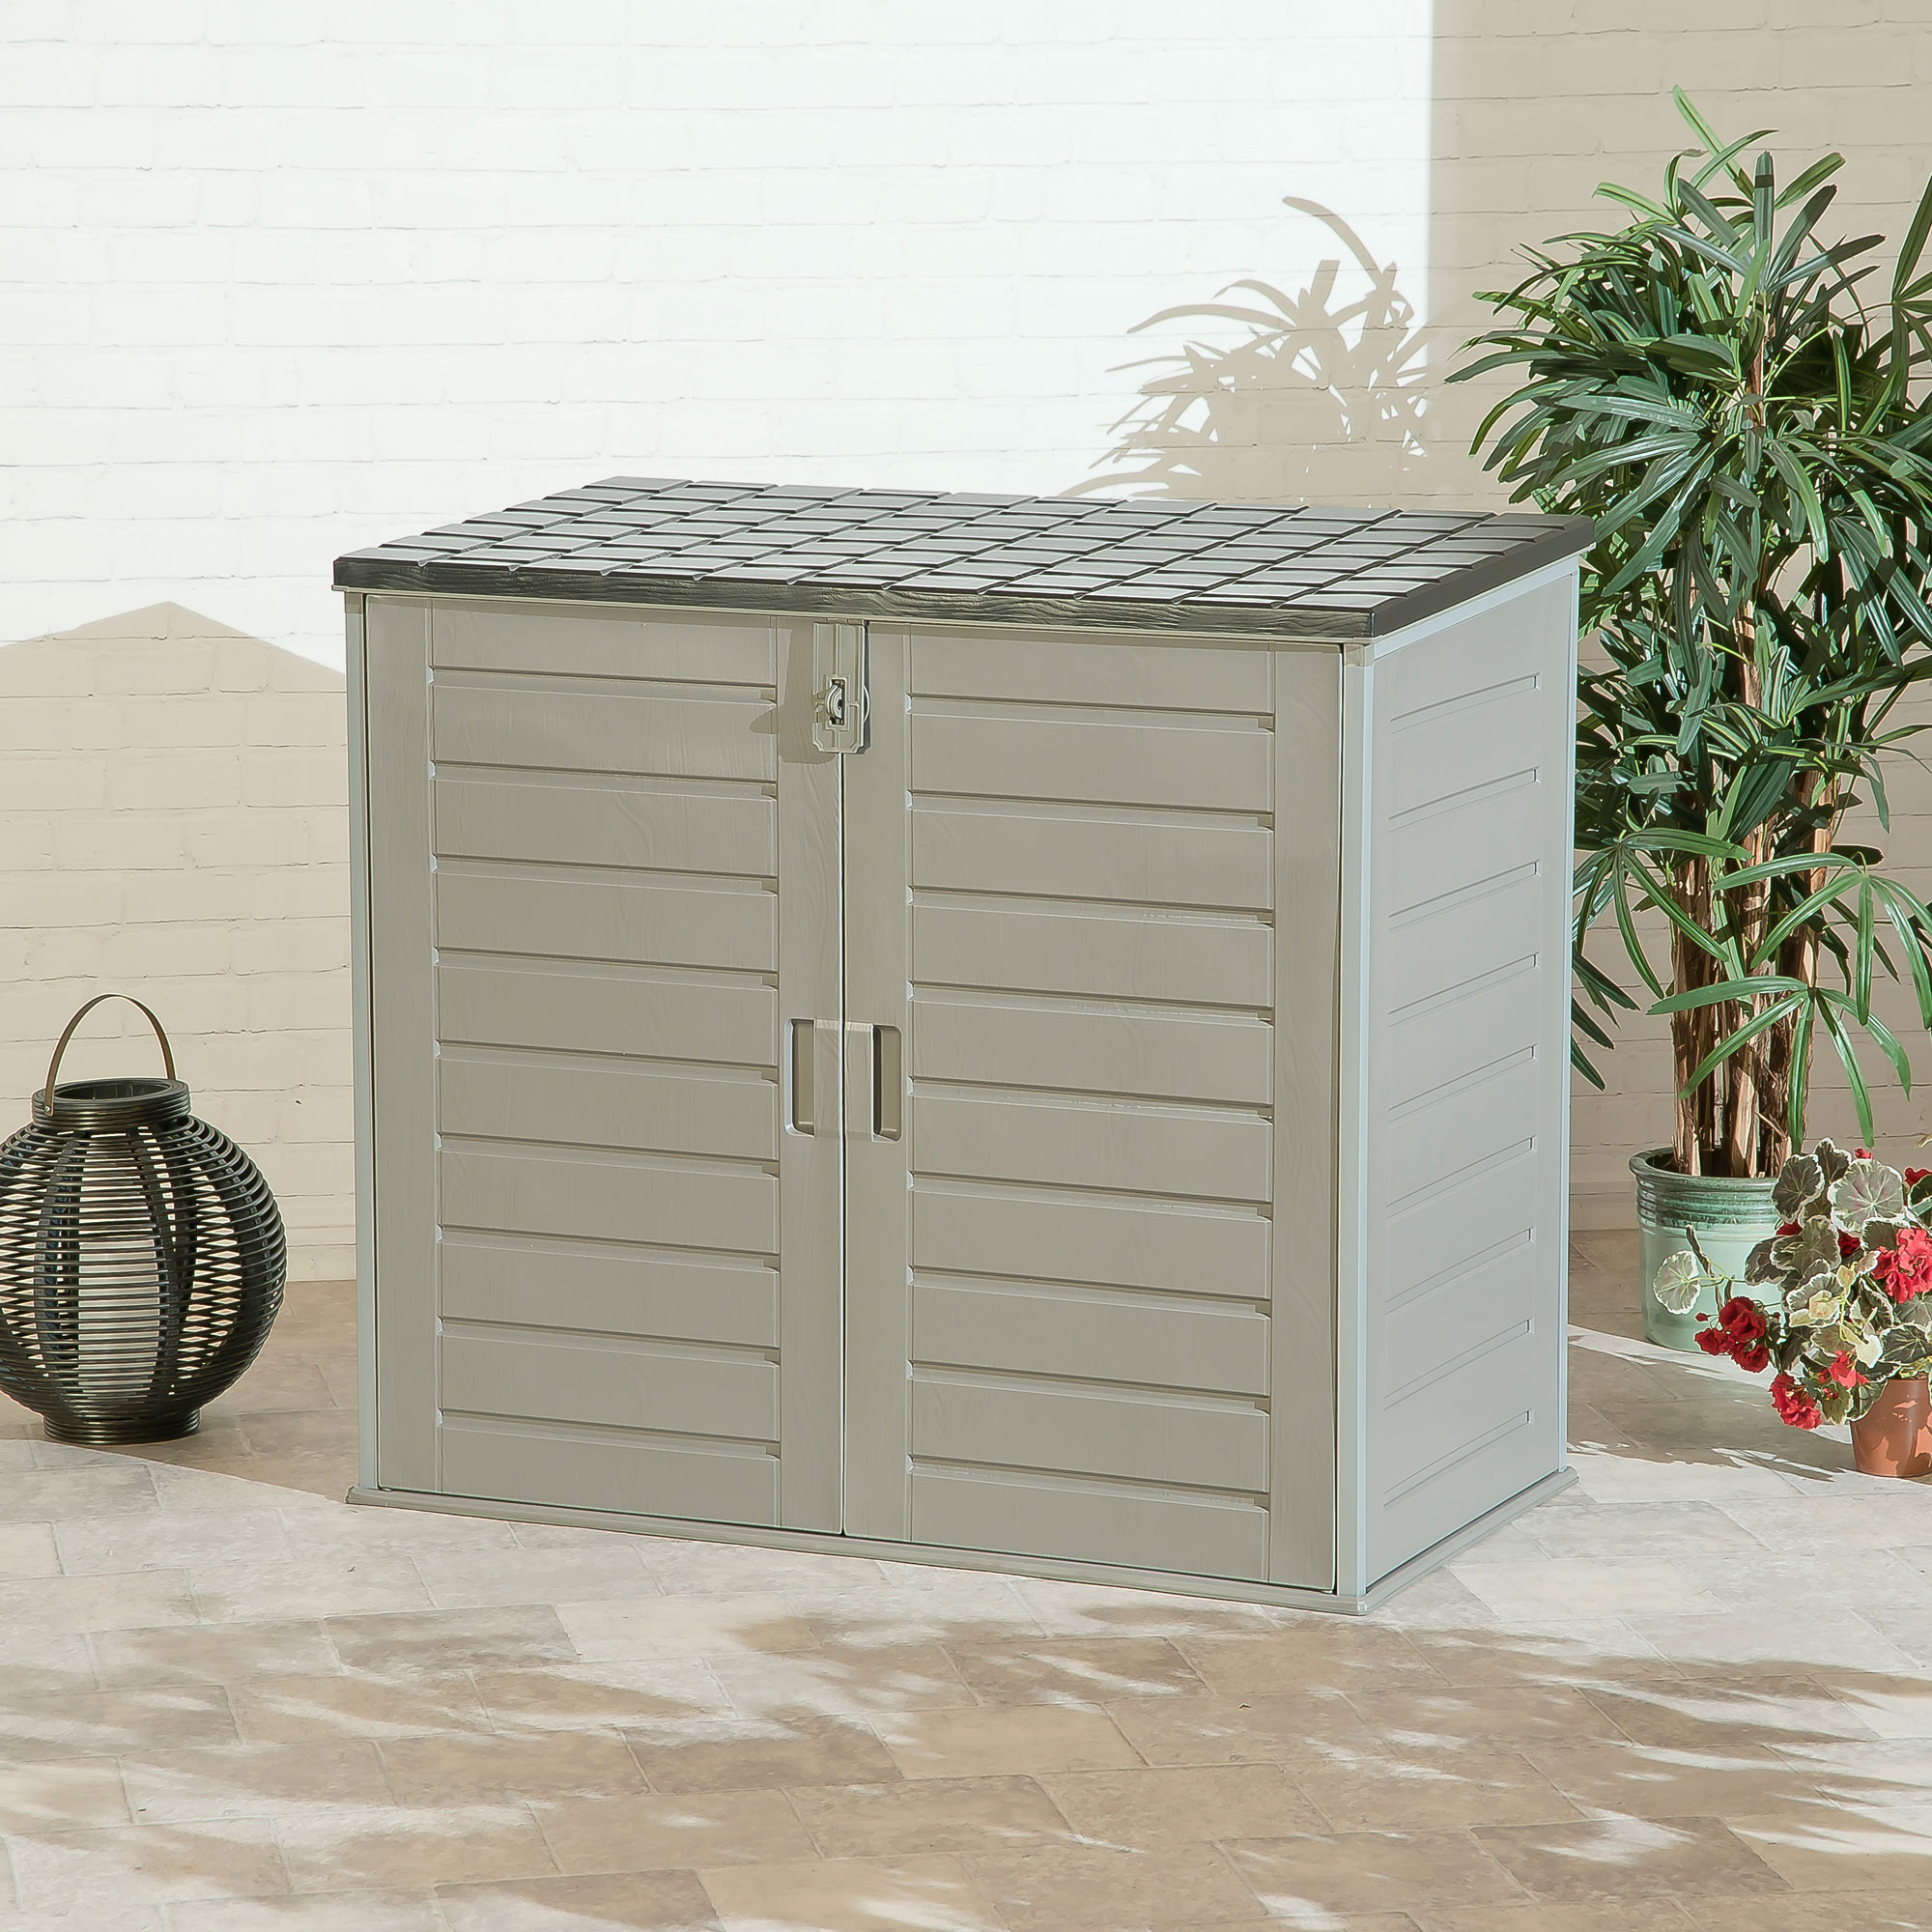 Garden Storage Cabinet With 2 Gas Lifts